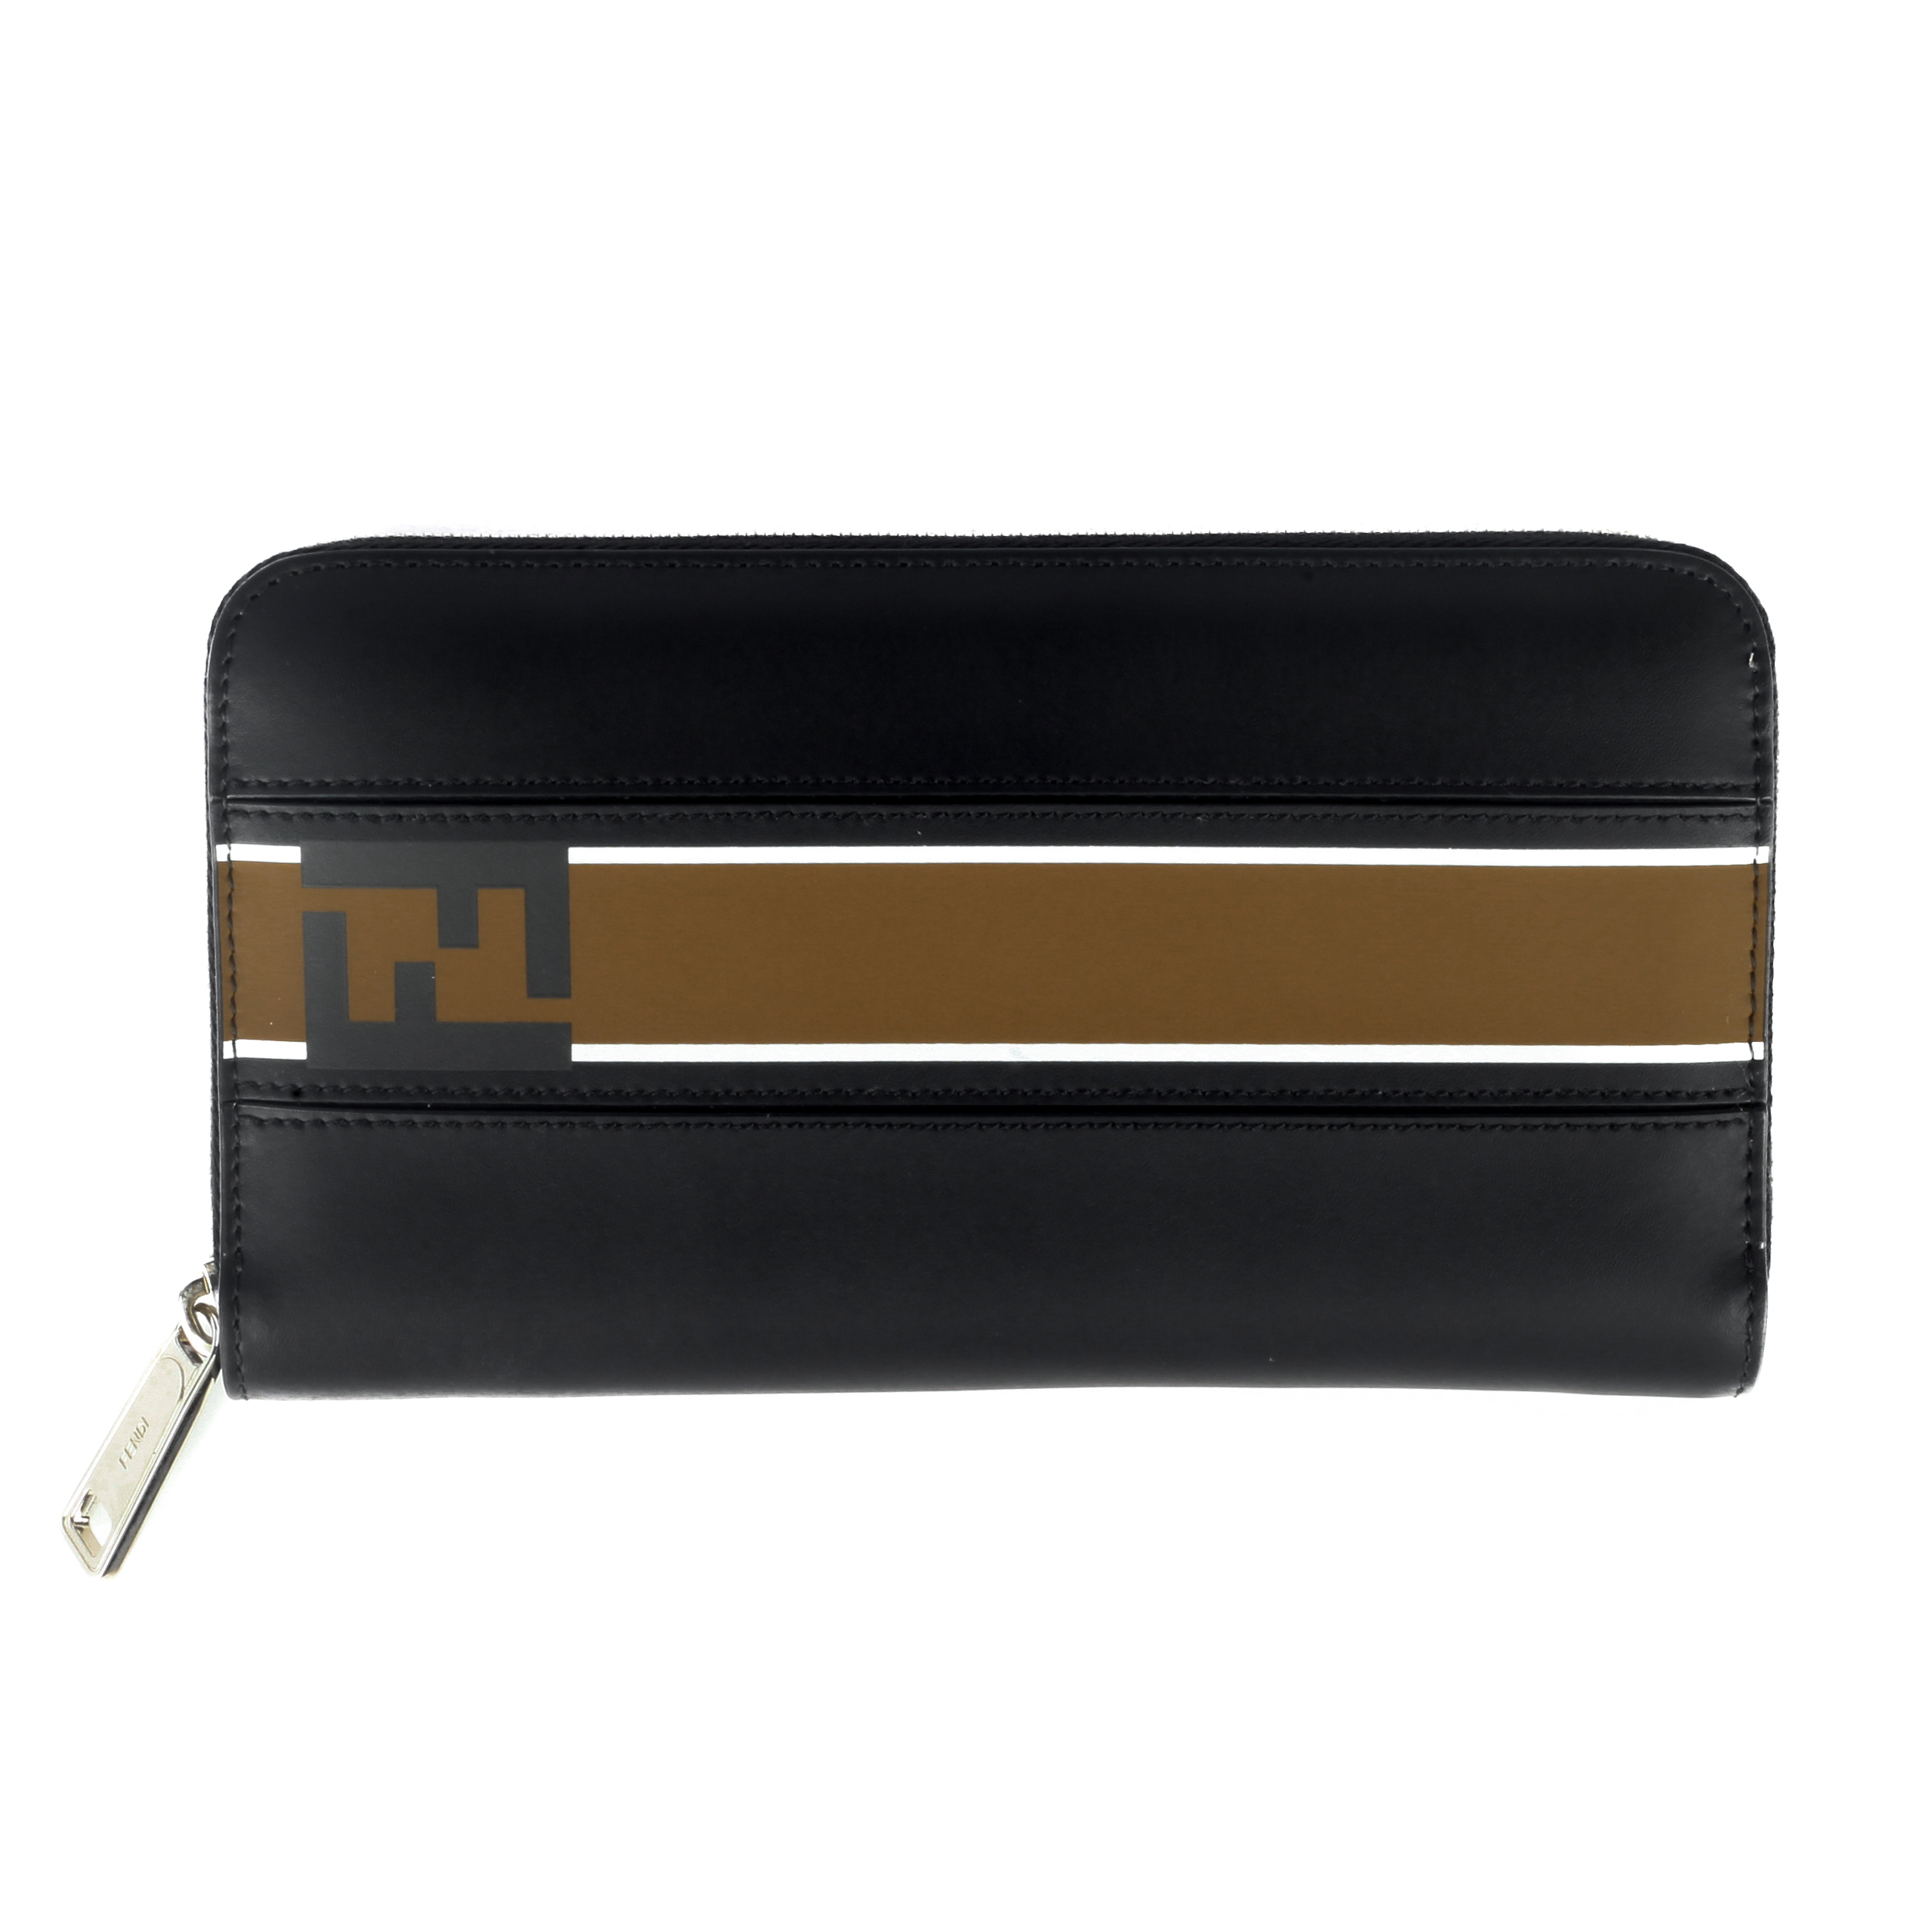 c4bbb20ab98 Fendi Unisex Leather Continental Zipper Wallet Black 8057941663490 ...